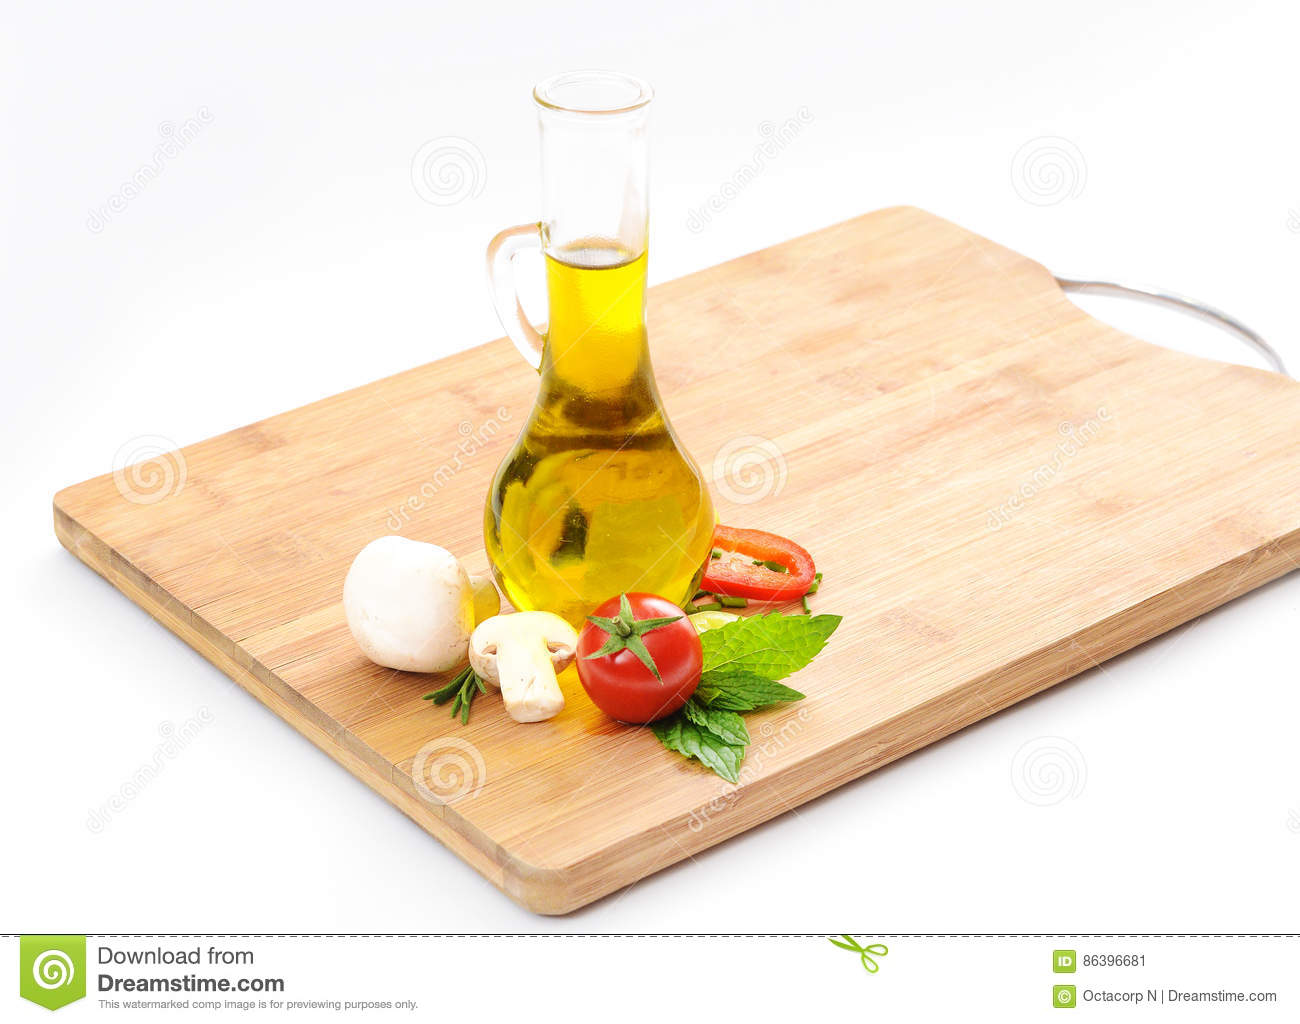 Healthy food background with various vegetables ingredients, Clean image concept for designers, chefs and cook books